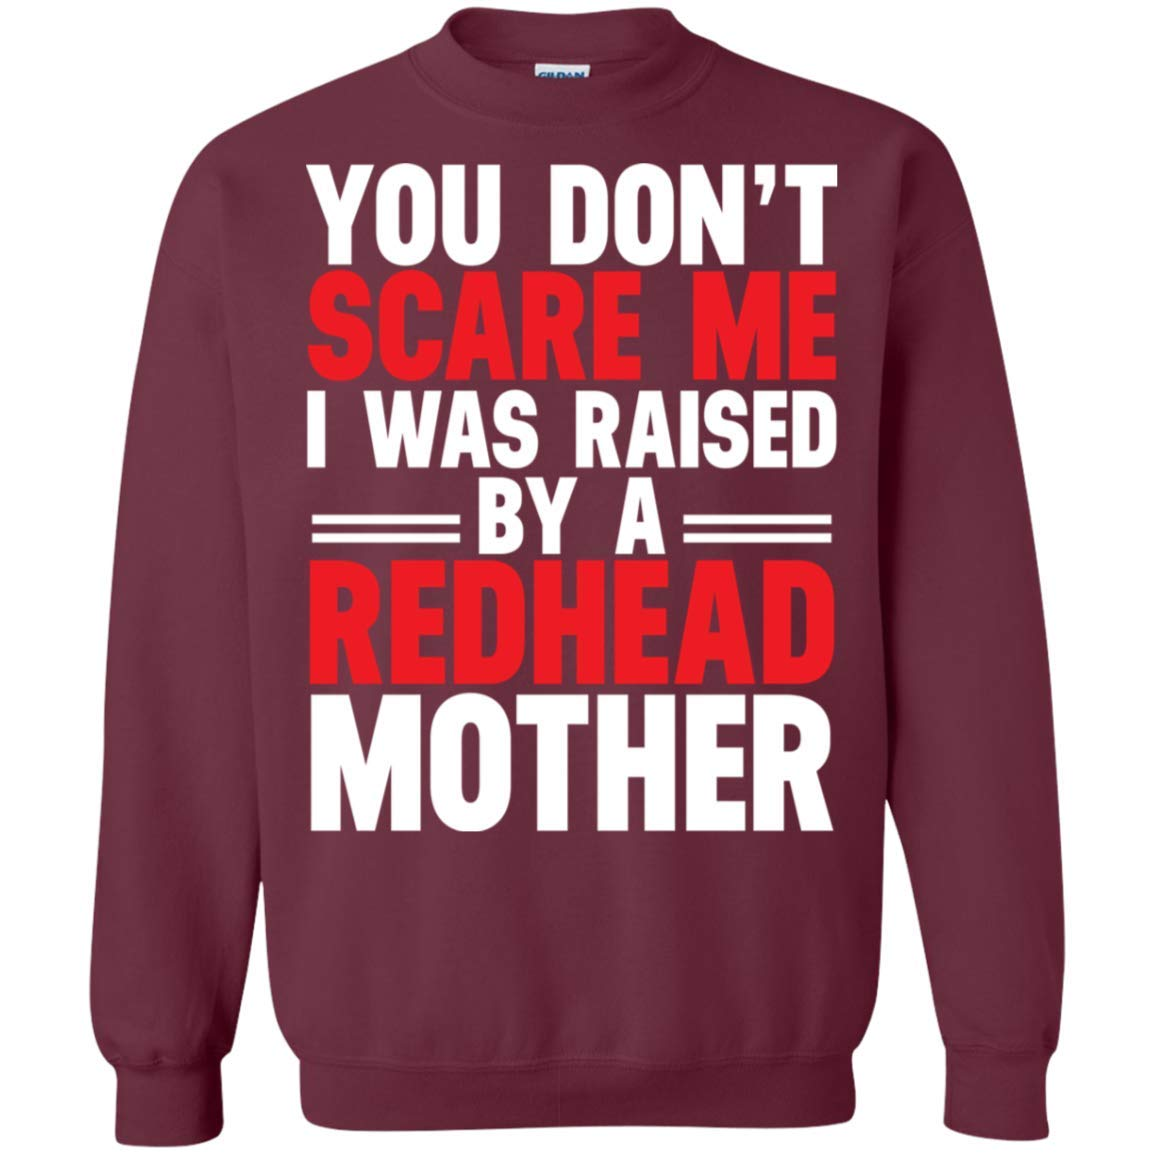 I was Raised by a Redhead Mother Funny Women Sweatshirt tee